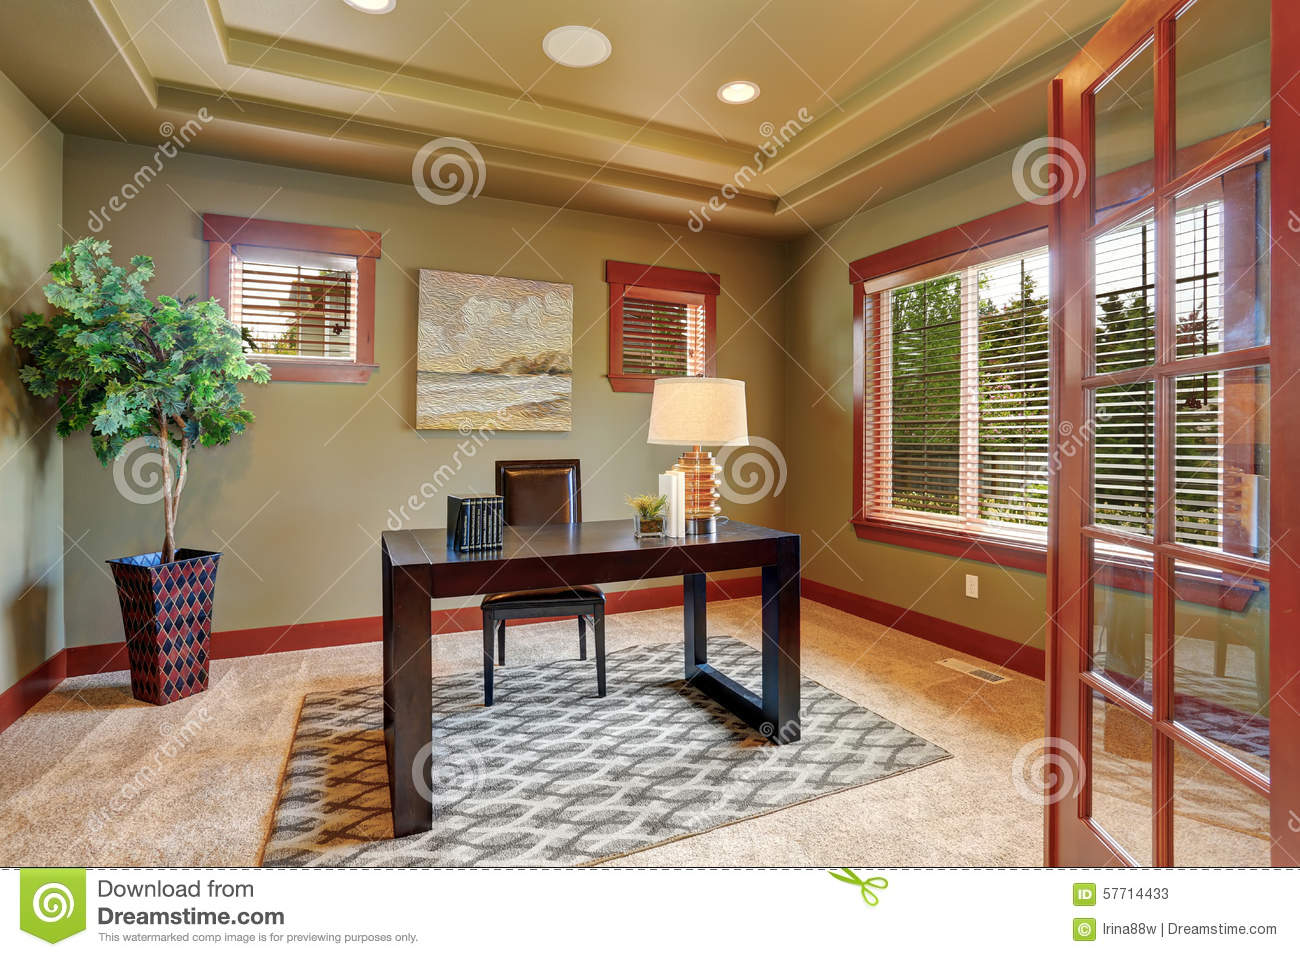 Paint For Home Office Color Ideas Luxury Home Office With Green Interior Paint Dreamstimecom Luxury Home Office With Green Interior Paint Stock Image Image Of